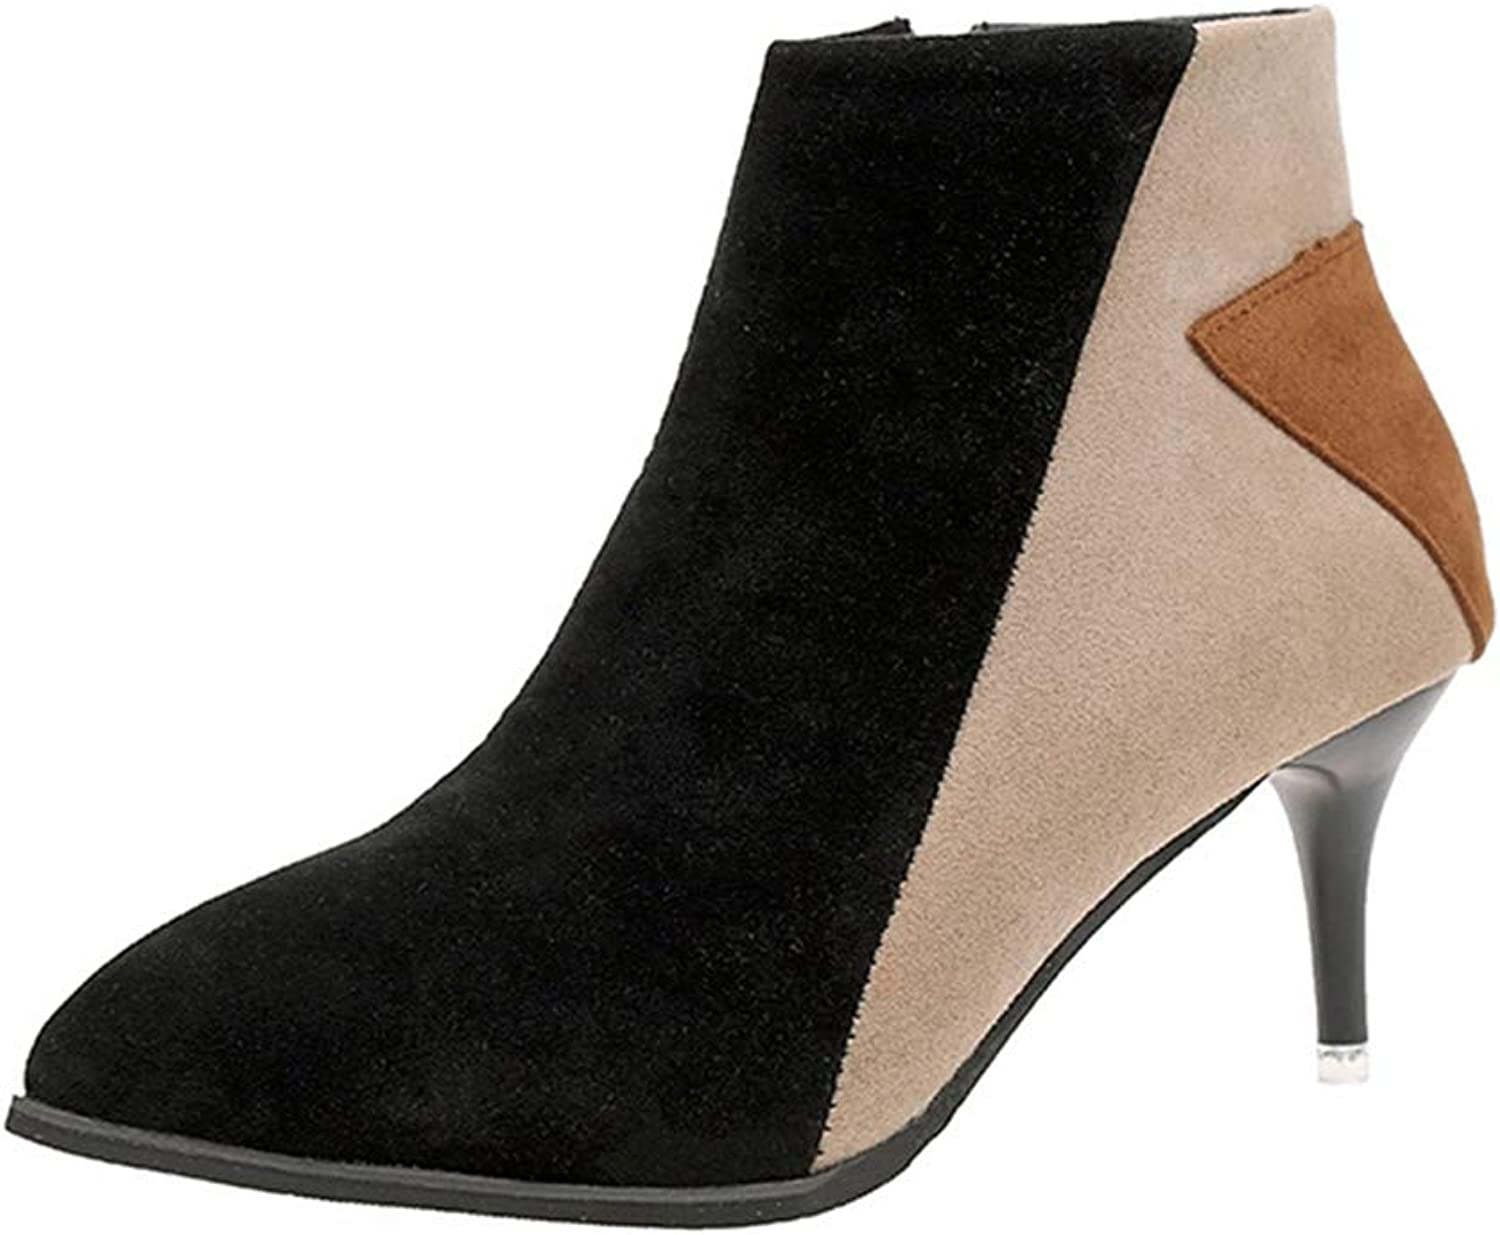 York Zhu Women's Short Boots,Pointed Toe Faux Suede High Heels Ankle Boots